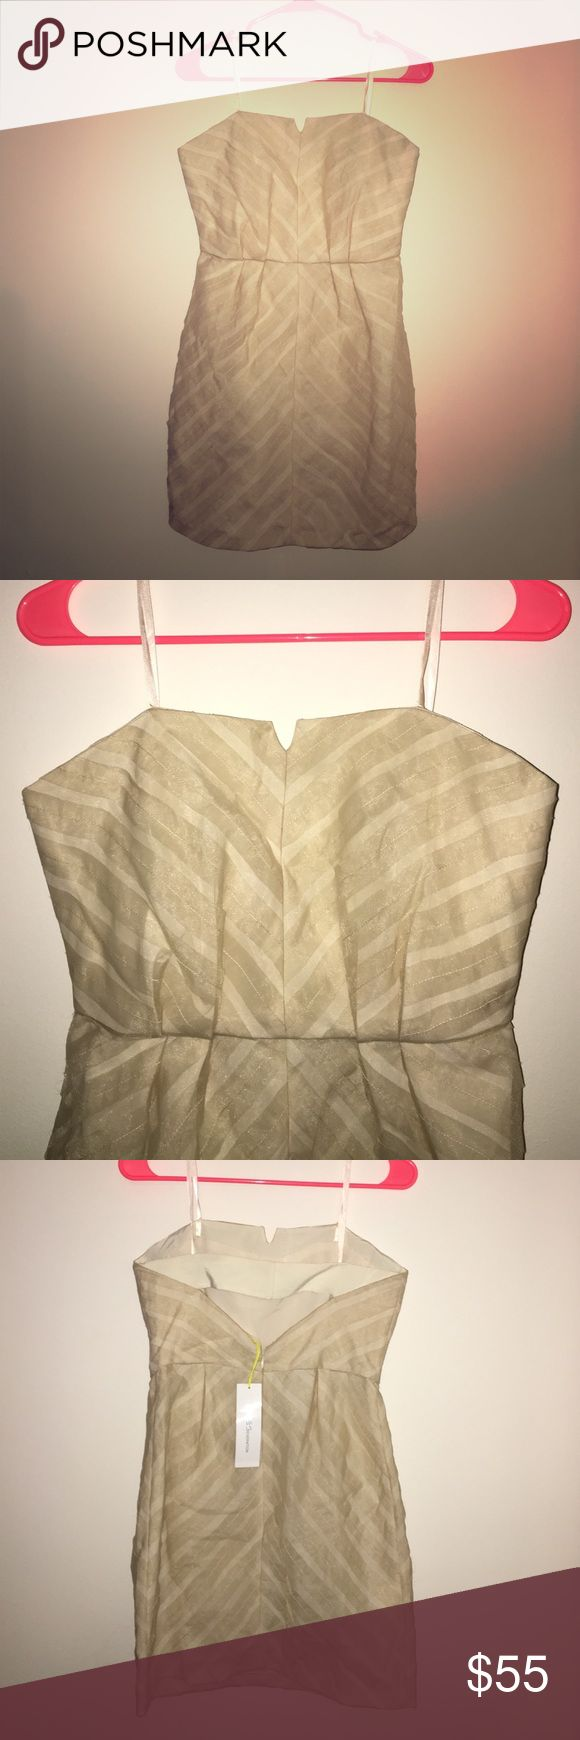 NWT BCBGeneration Beige Cocktail Dress Size 6 New with tags beige BCBGeneration strapless lined cocktail dress size 6. Back has a cute cutout and back zip closure. BCBGeneration Dresses Strapless